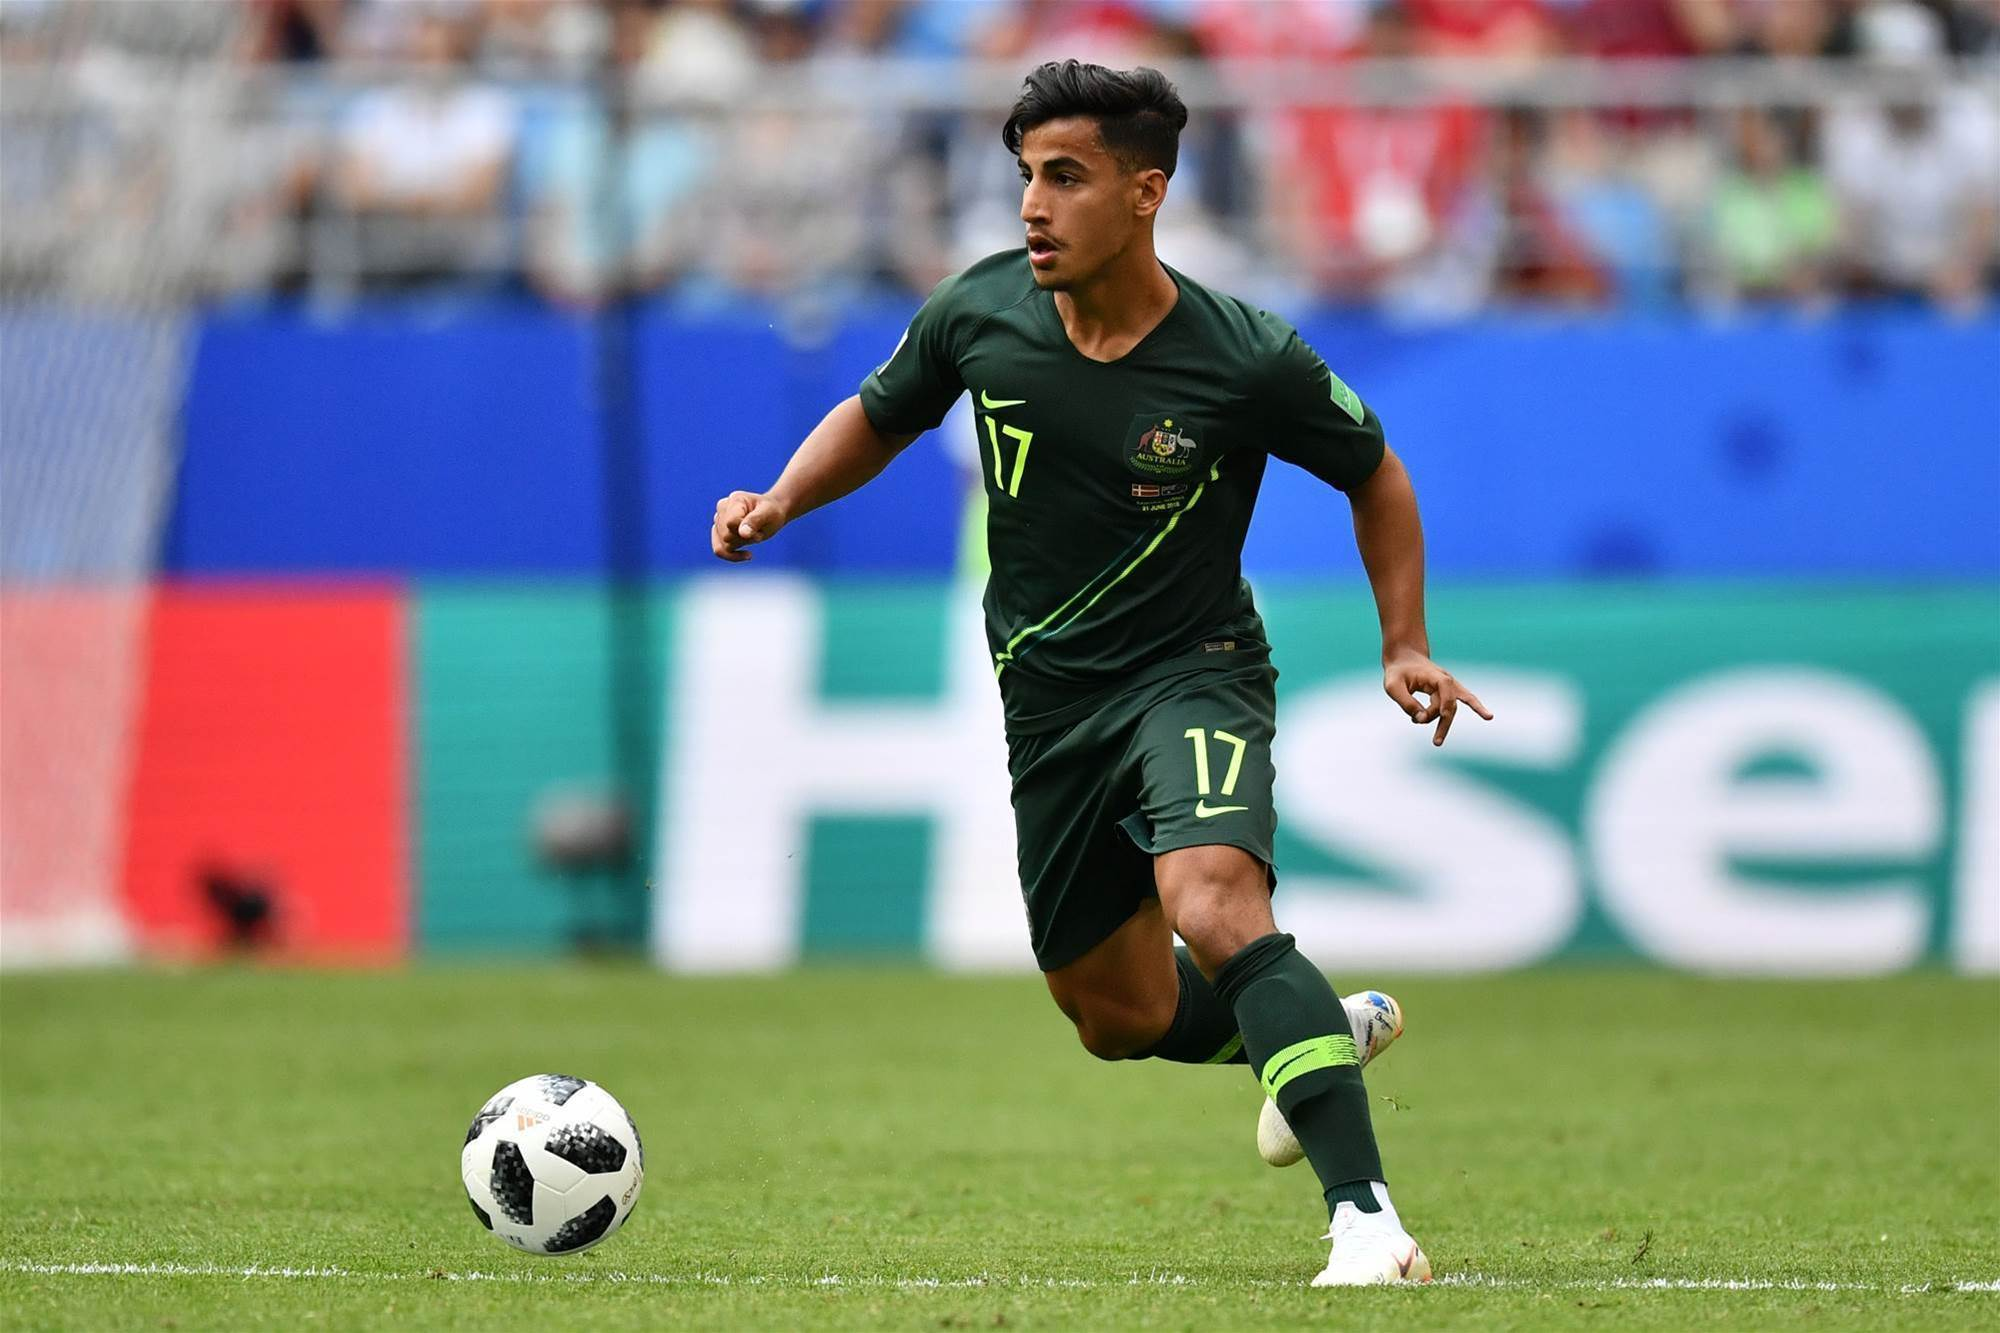 Arzani missing from Celtic's Europa League squad